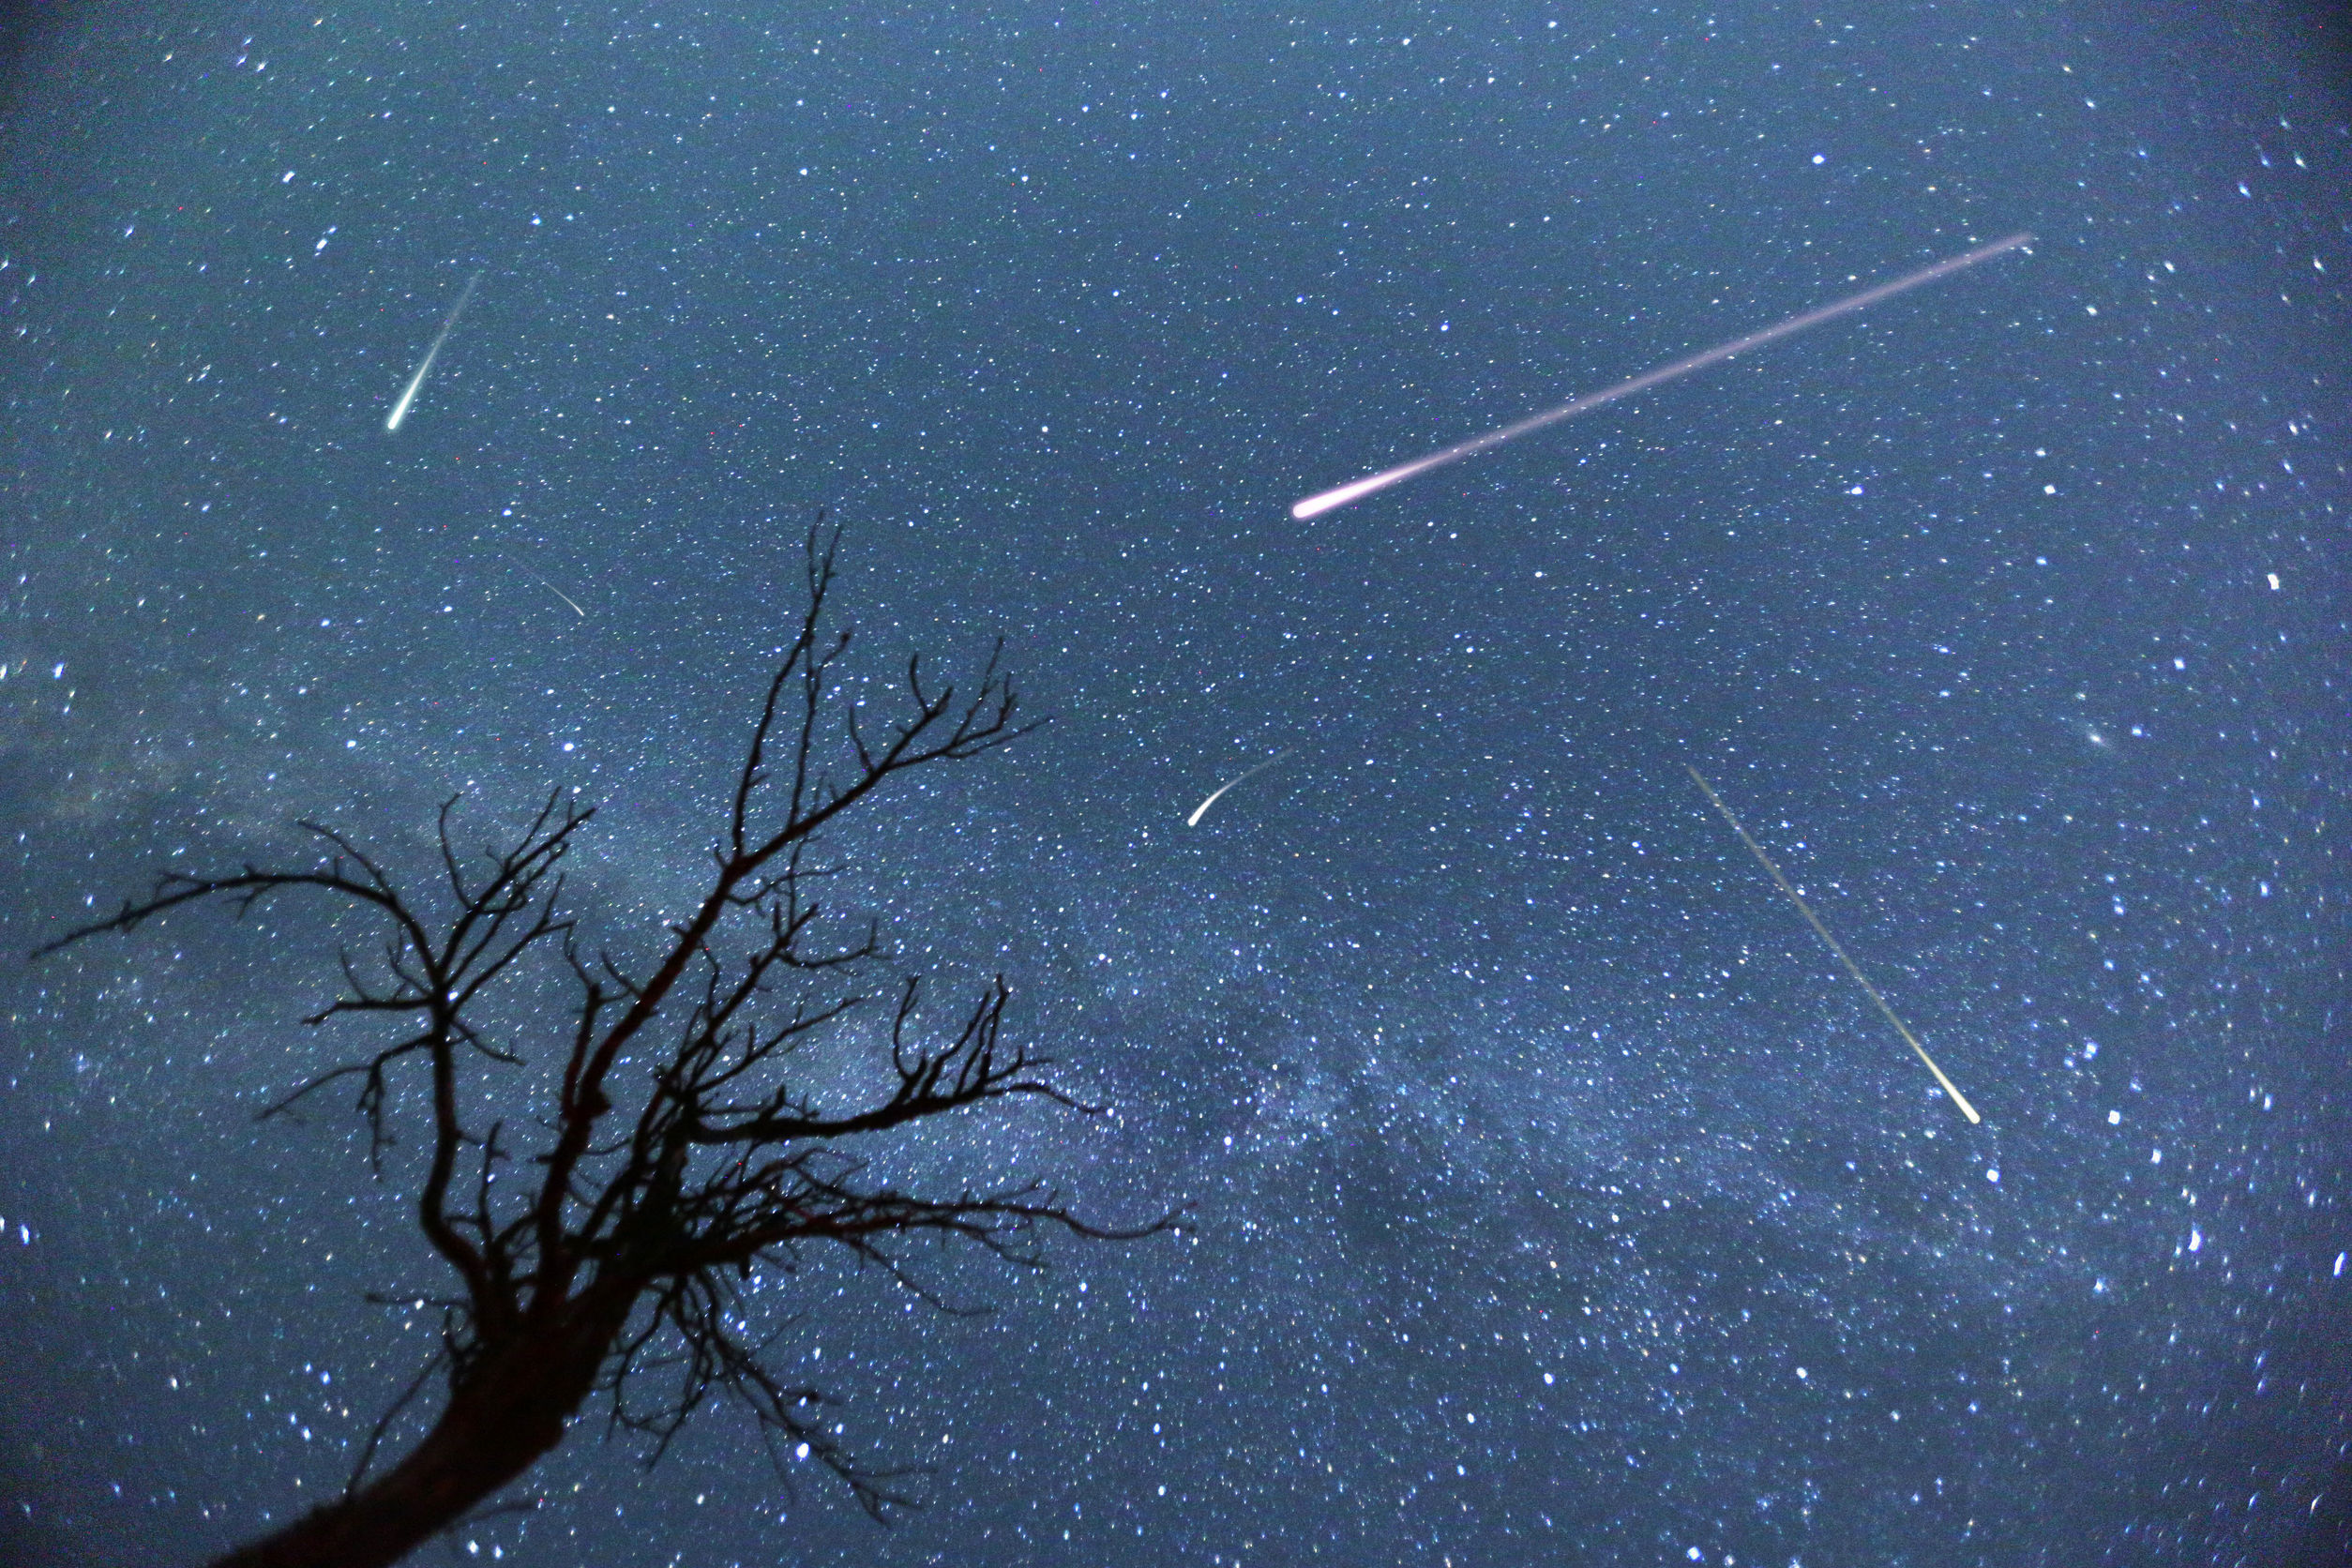 Jupiter's Gravitational Pull: Why Perseid Meteor Shower Be Majestic This Year?